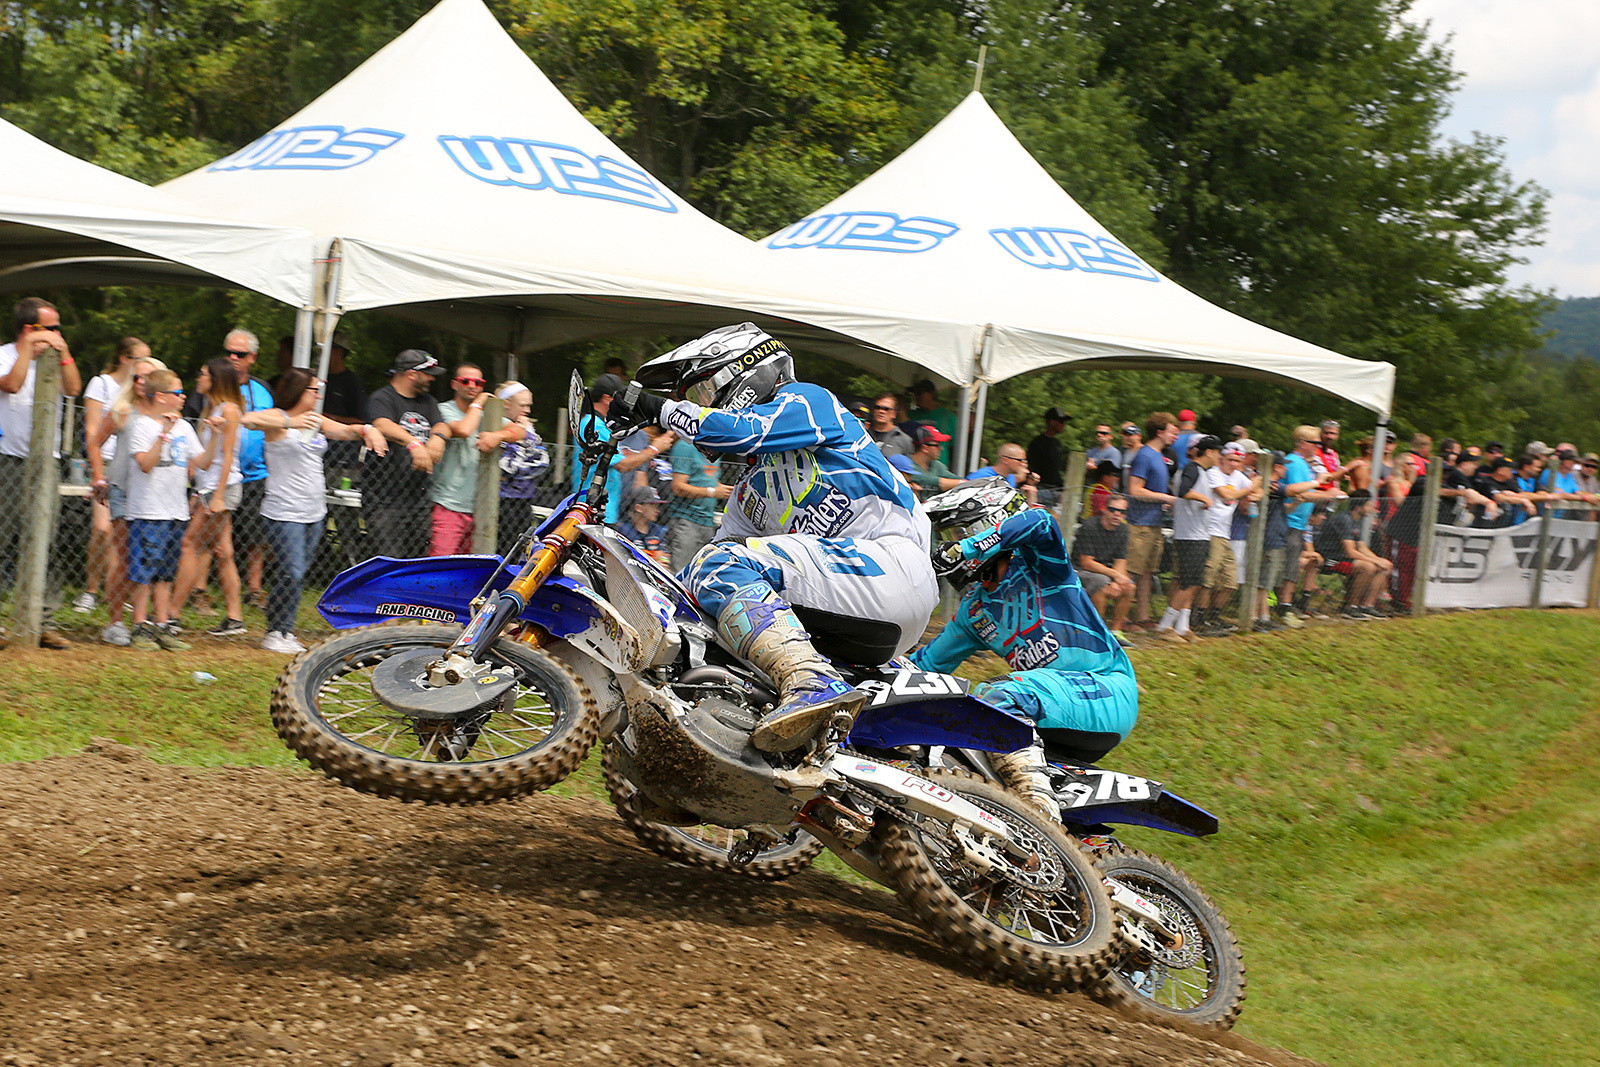 Jayce Pennington had a best of 17th in moto two, and was 20th overall.